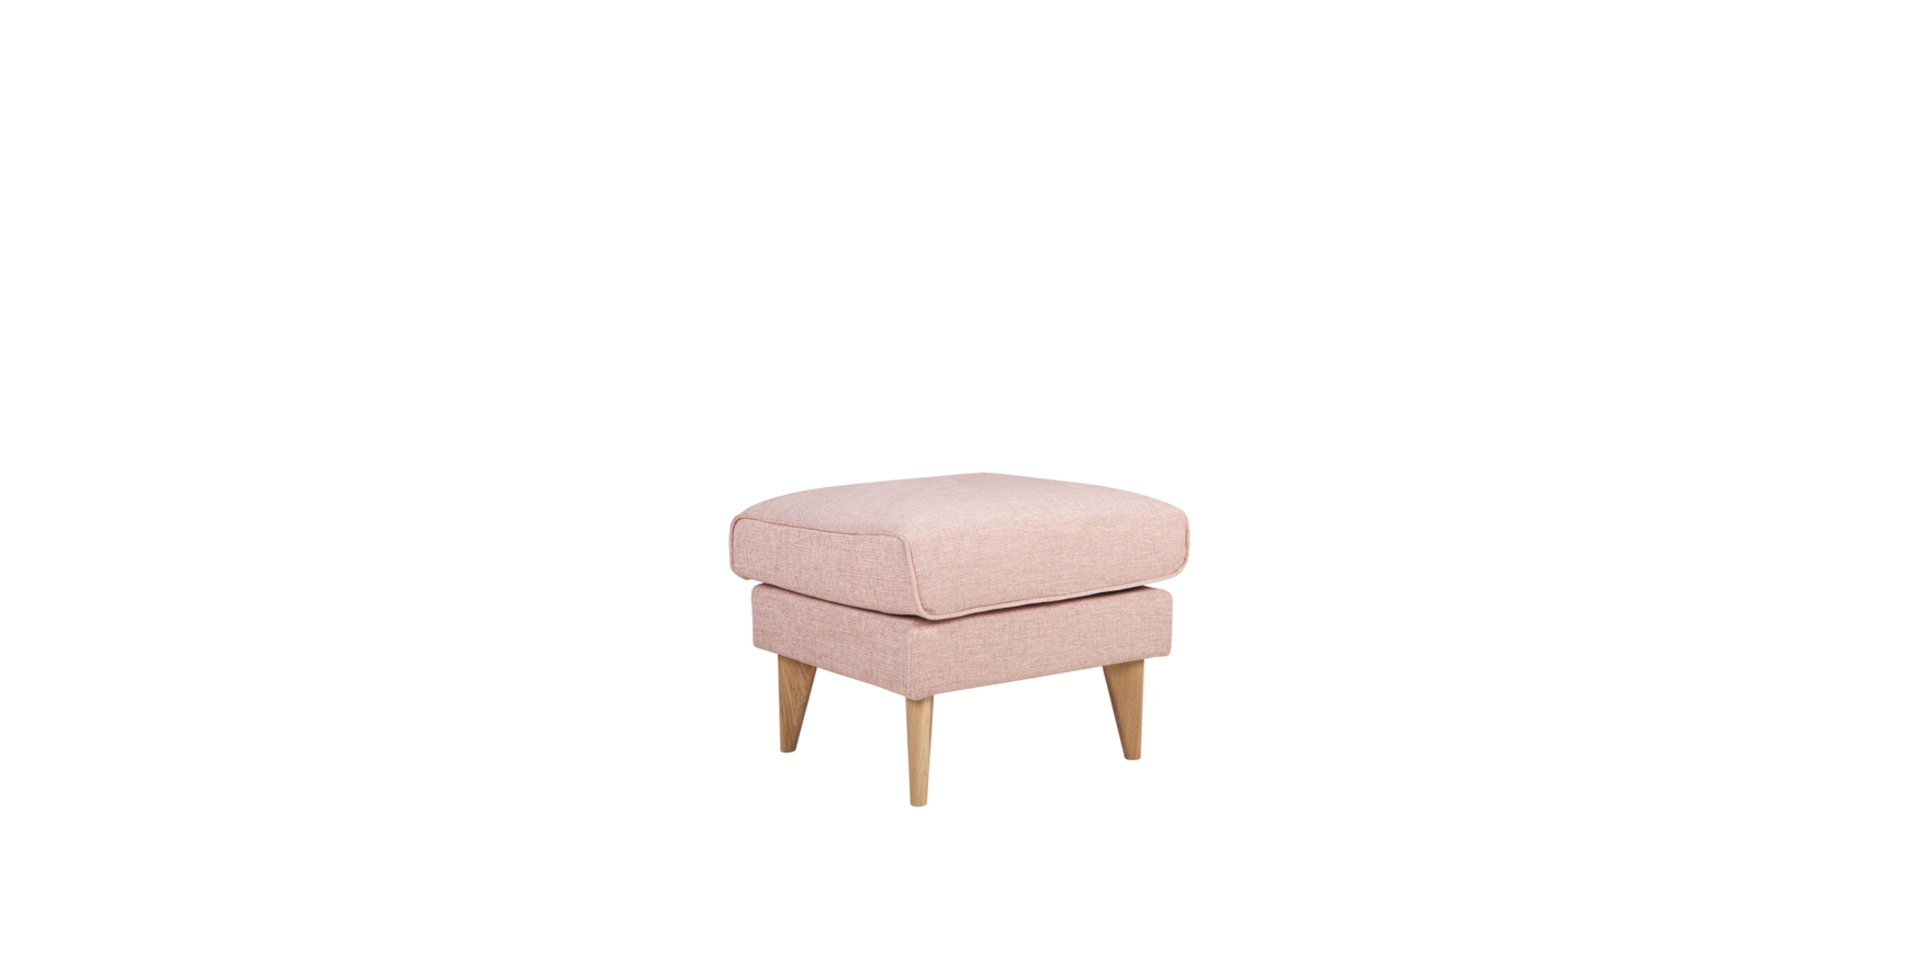 sits-pola-pouf-footstool_divine61_pink_3